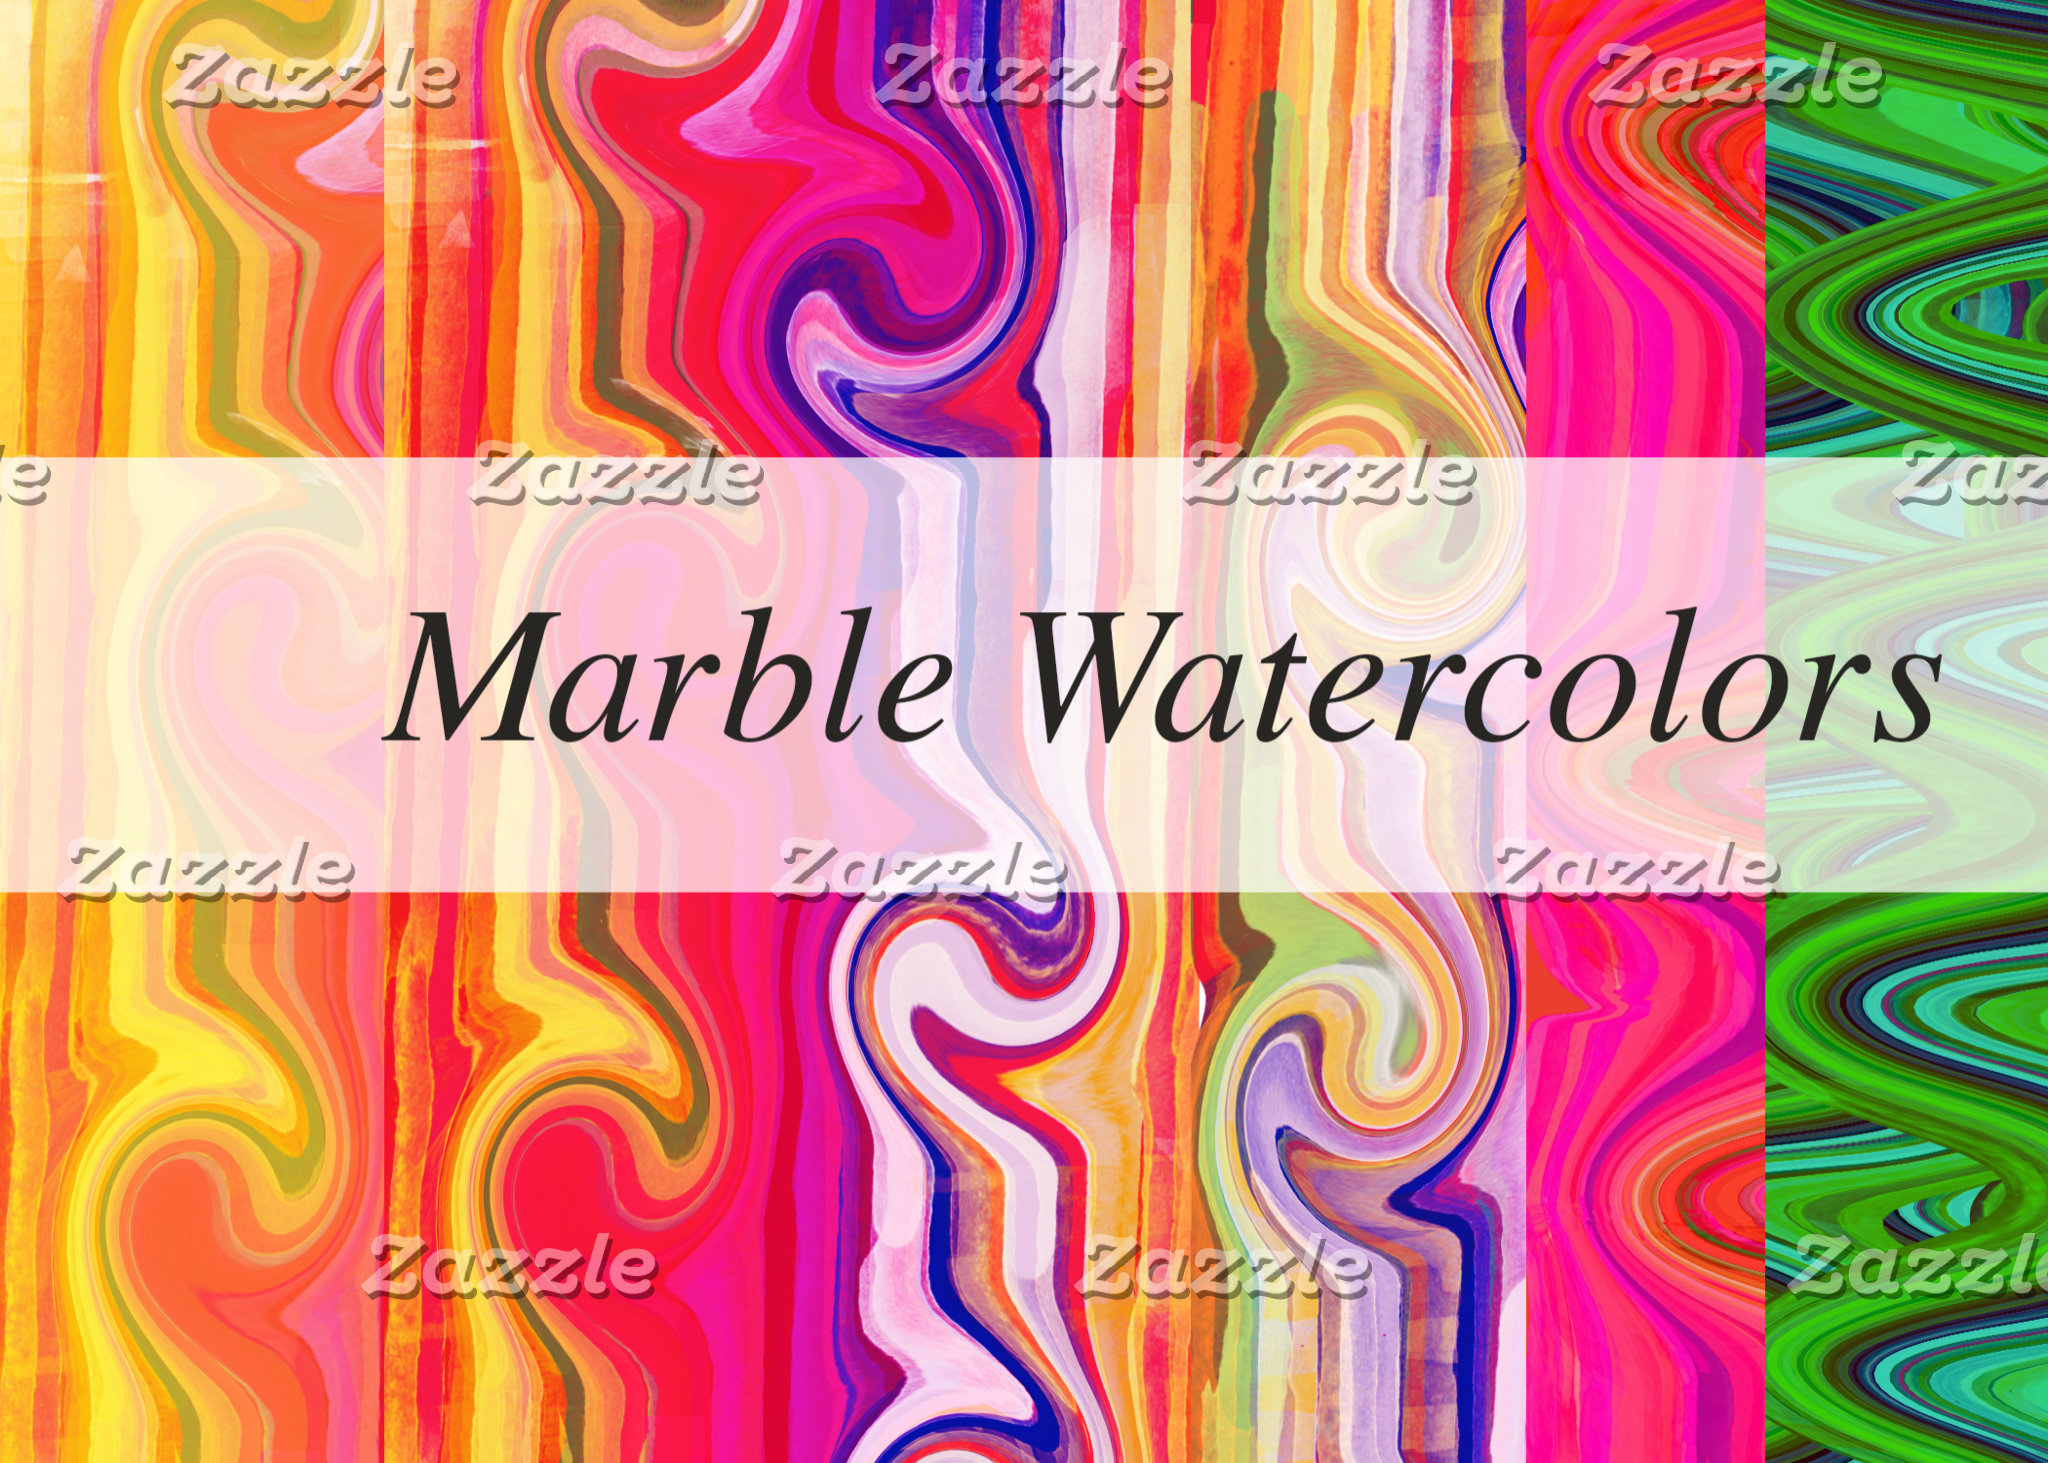 Marbled Watercolors